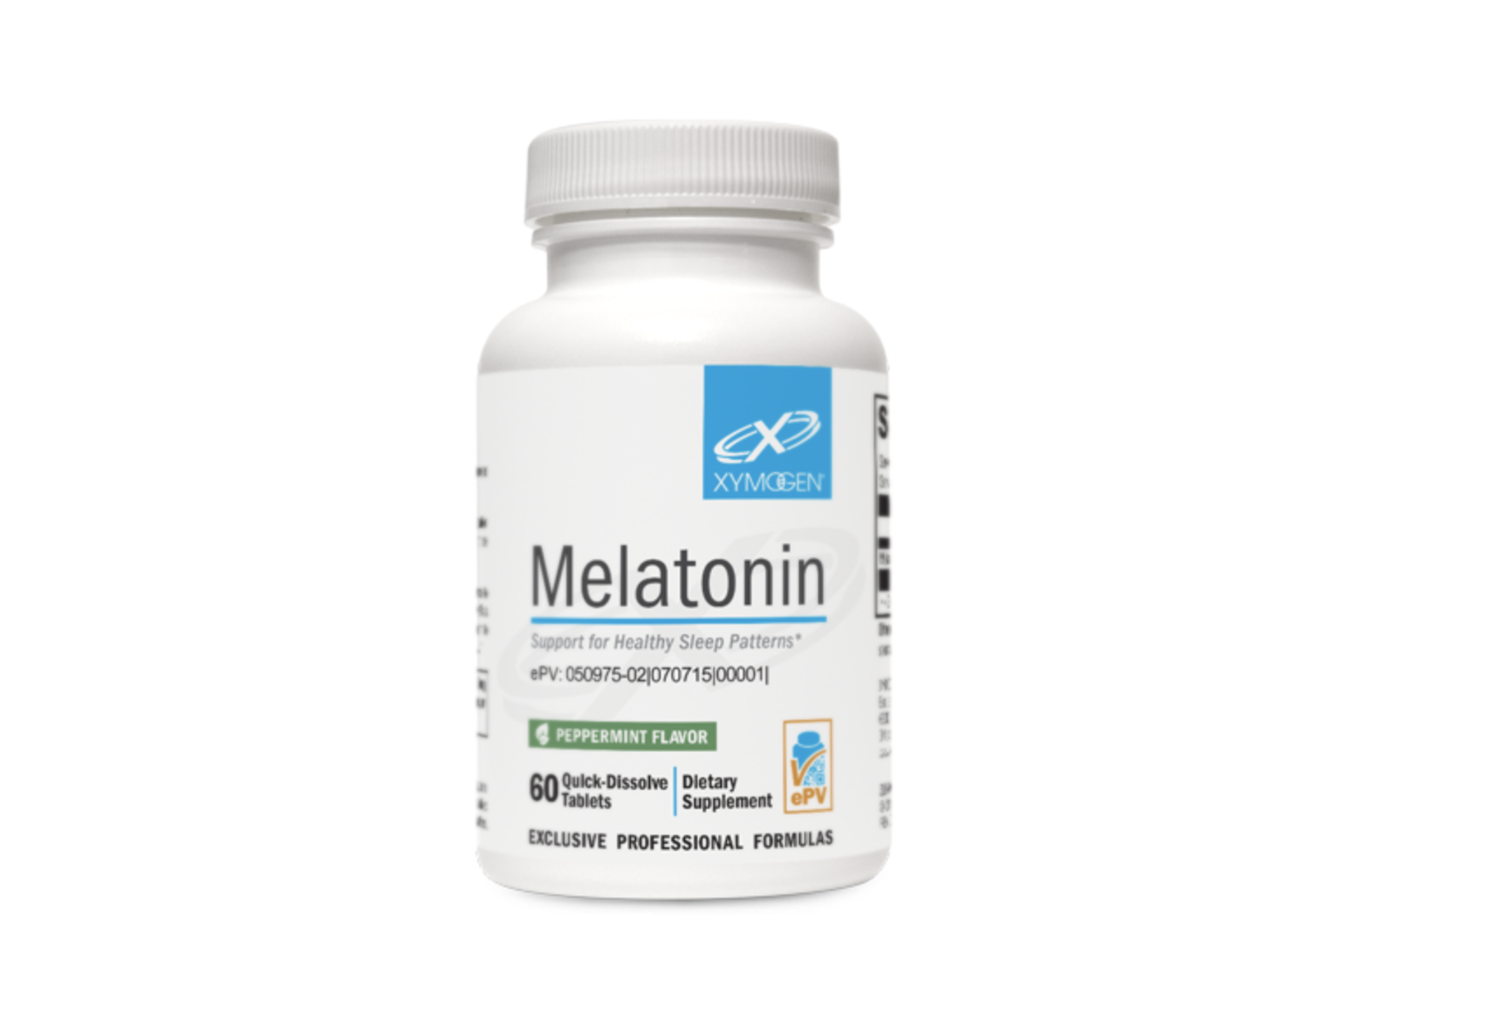 XYM Melatonin 60 Ct